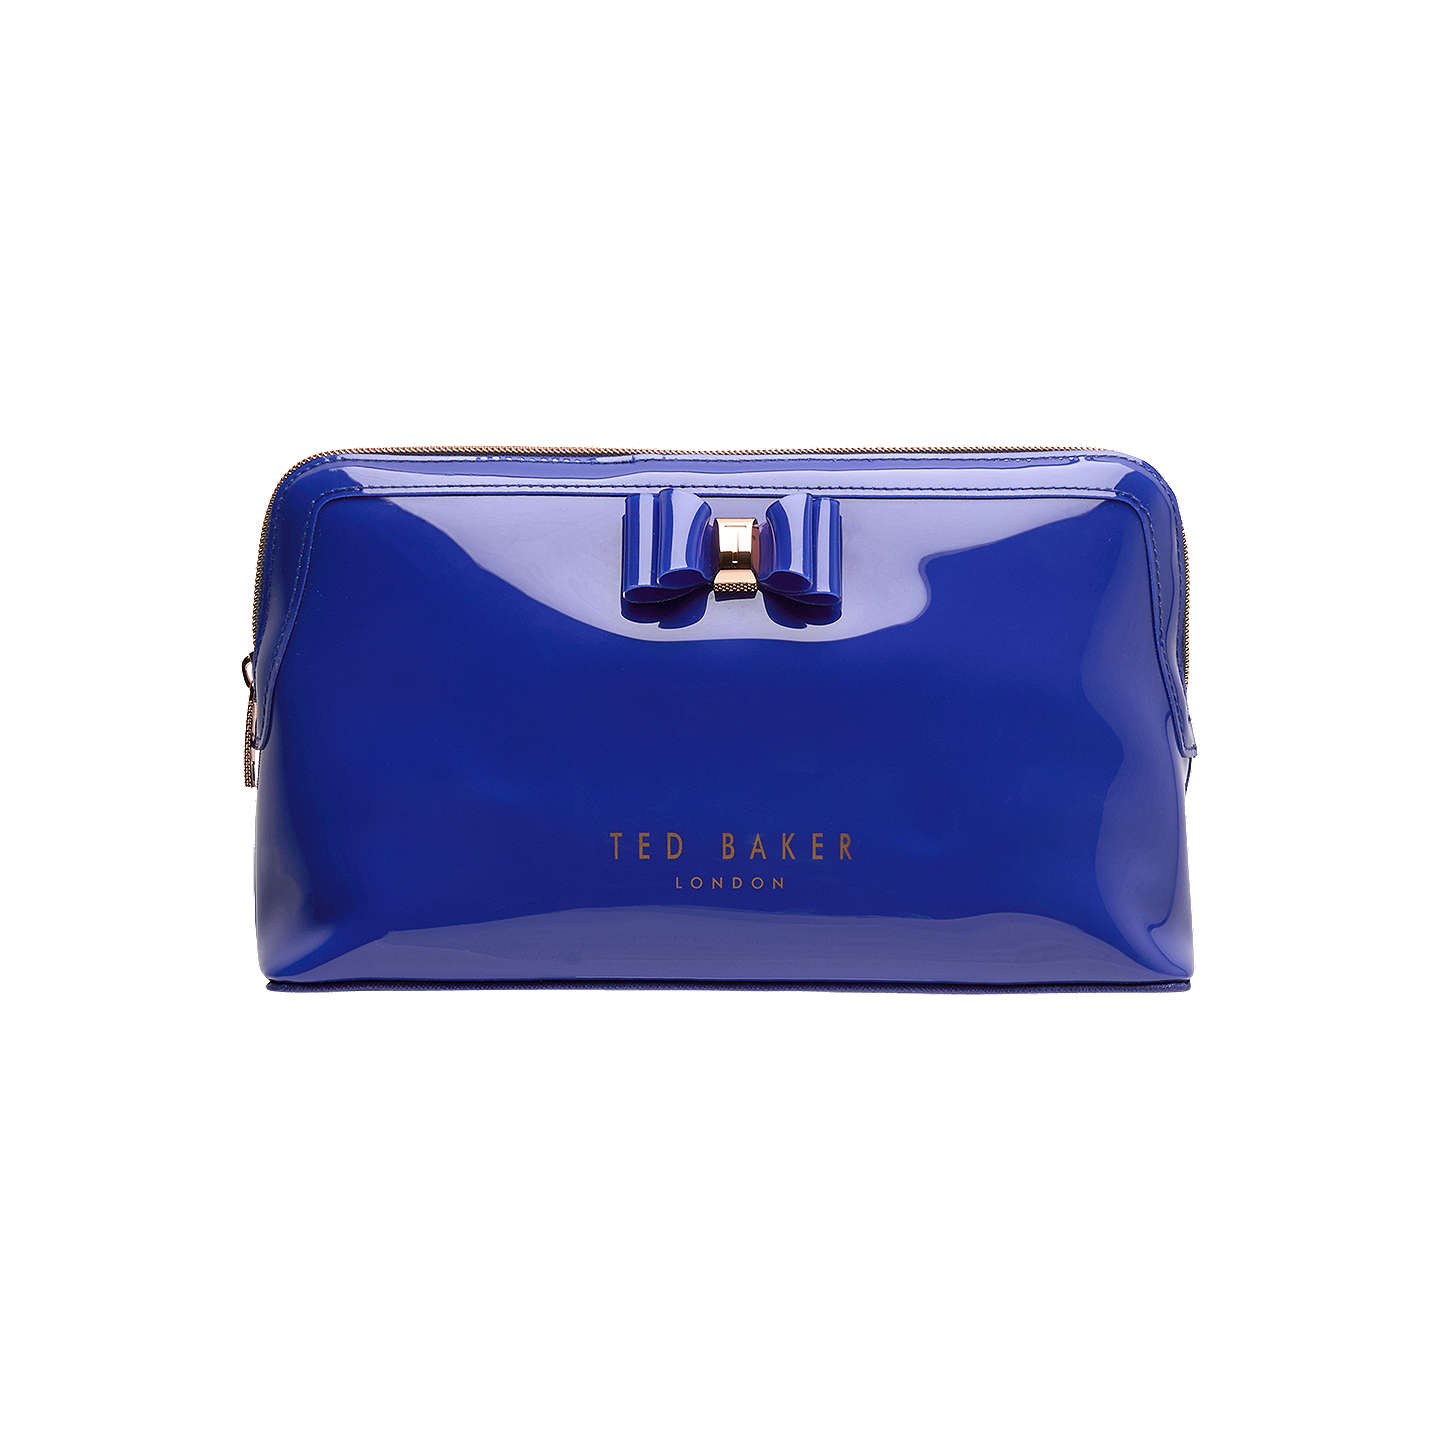 Ted baker makeup bag debenhams